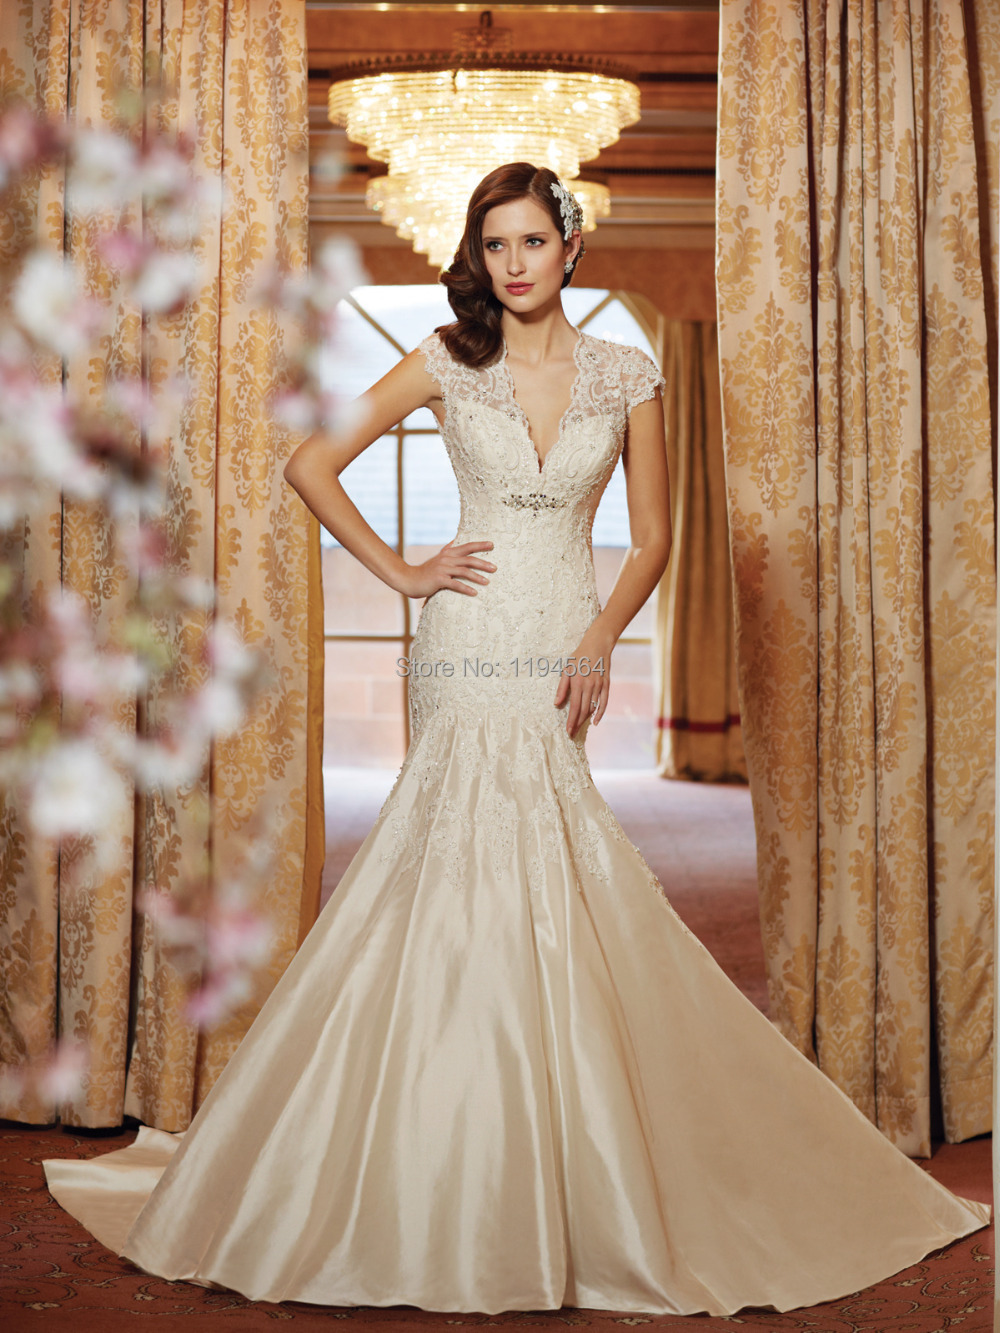 Free Shipping 2014 Wedding Dresses with Lace Mermaid Bridal Gowns ...